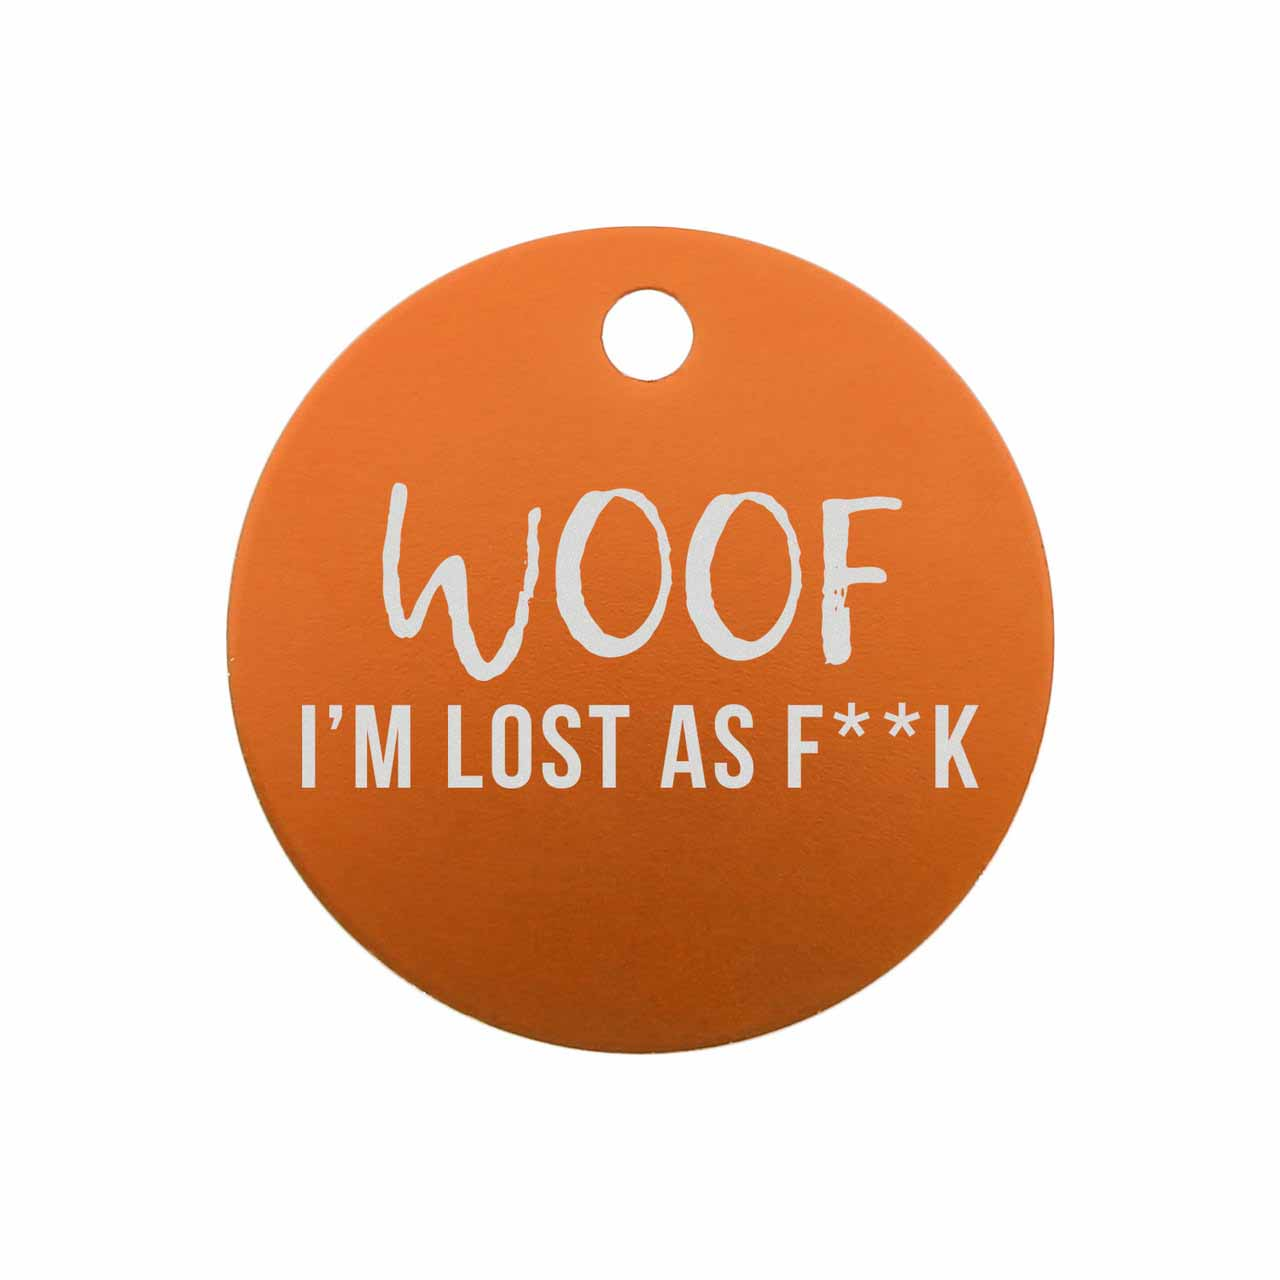 Woof 'm Lost a F**K Dog Tags Orange